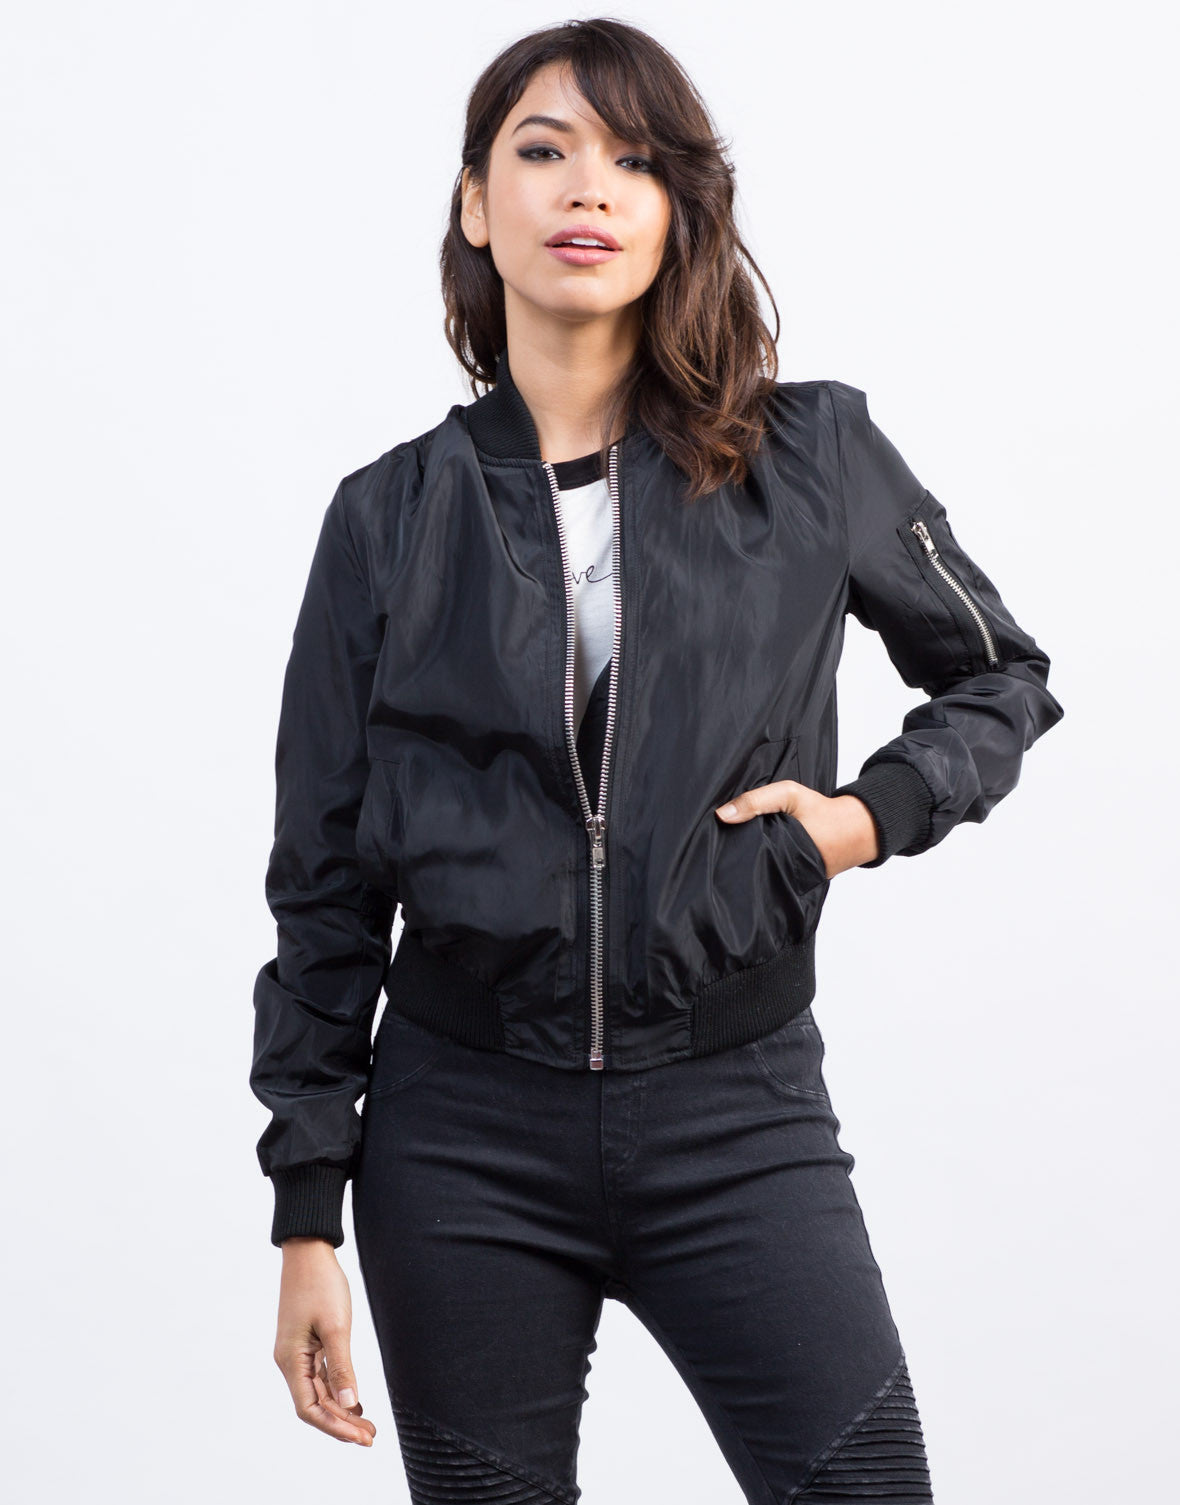 Front View of The Bomber Jacket